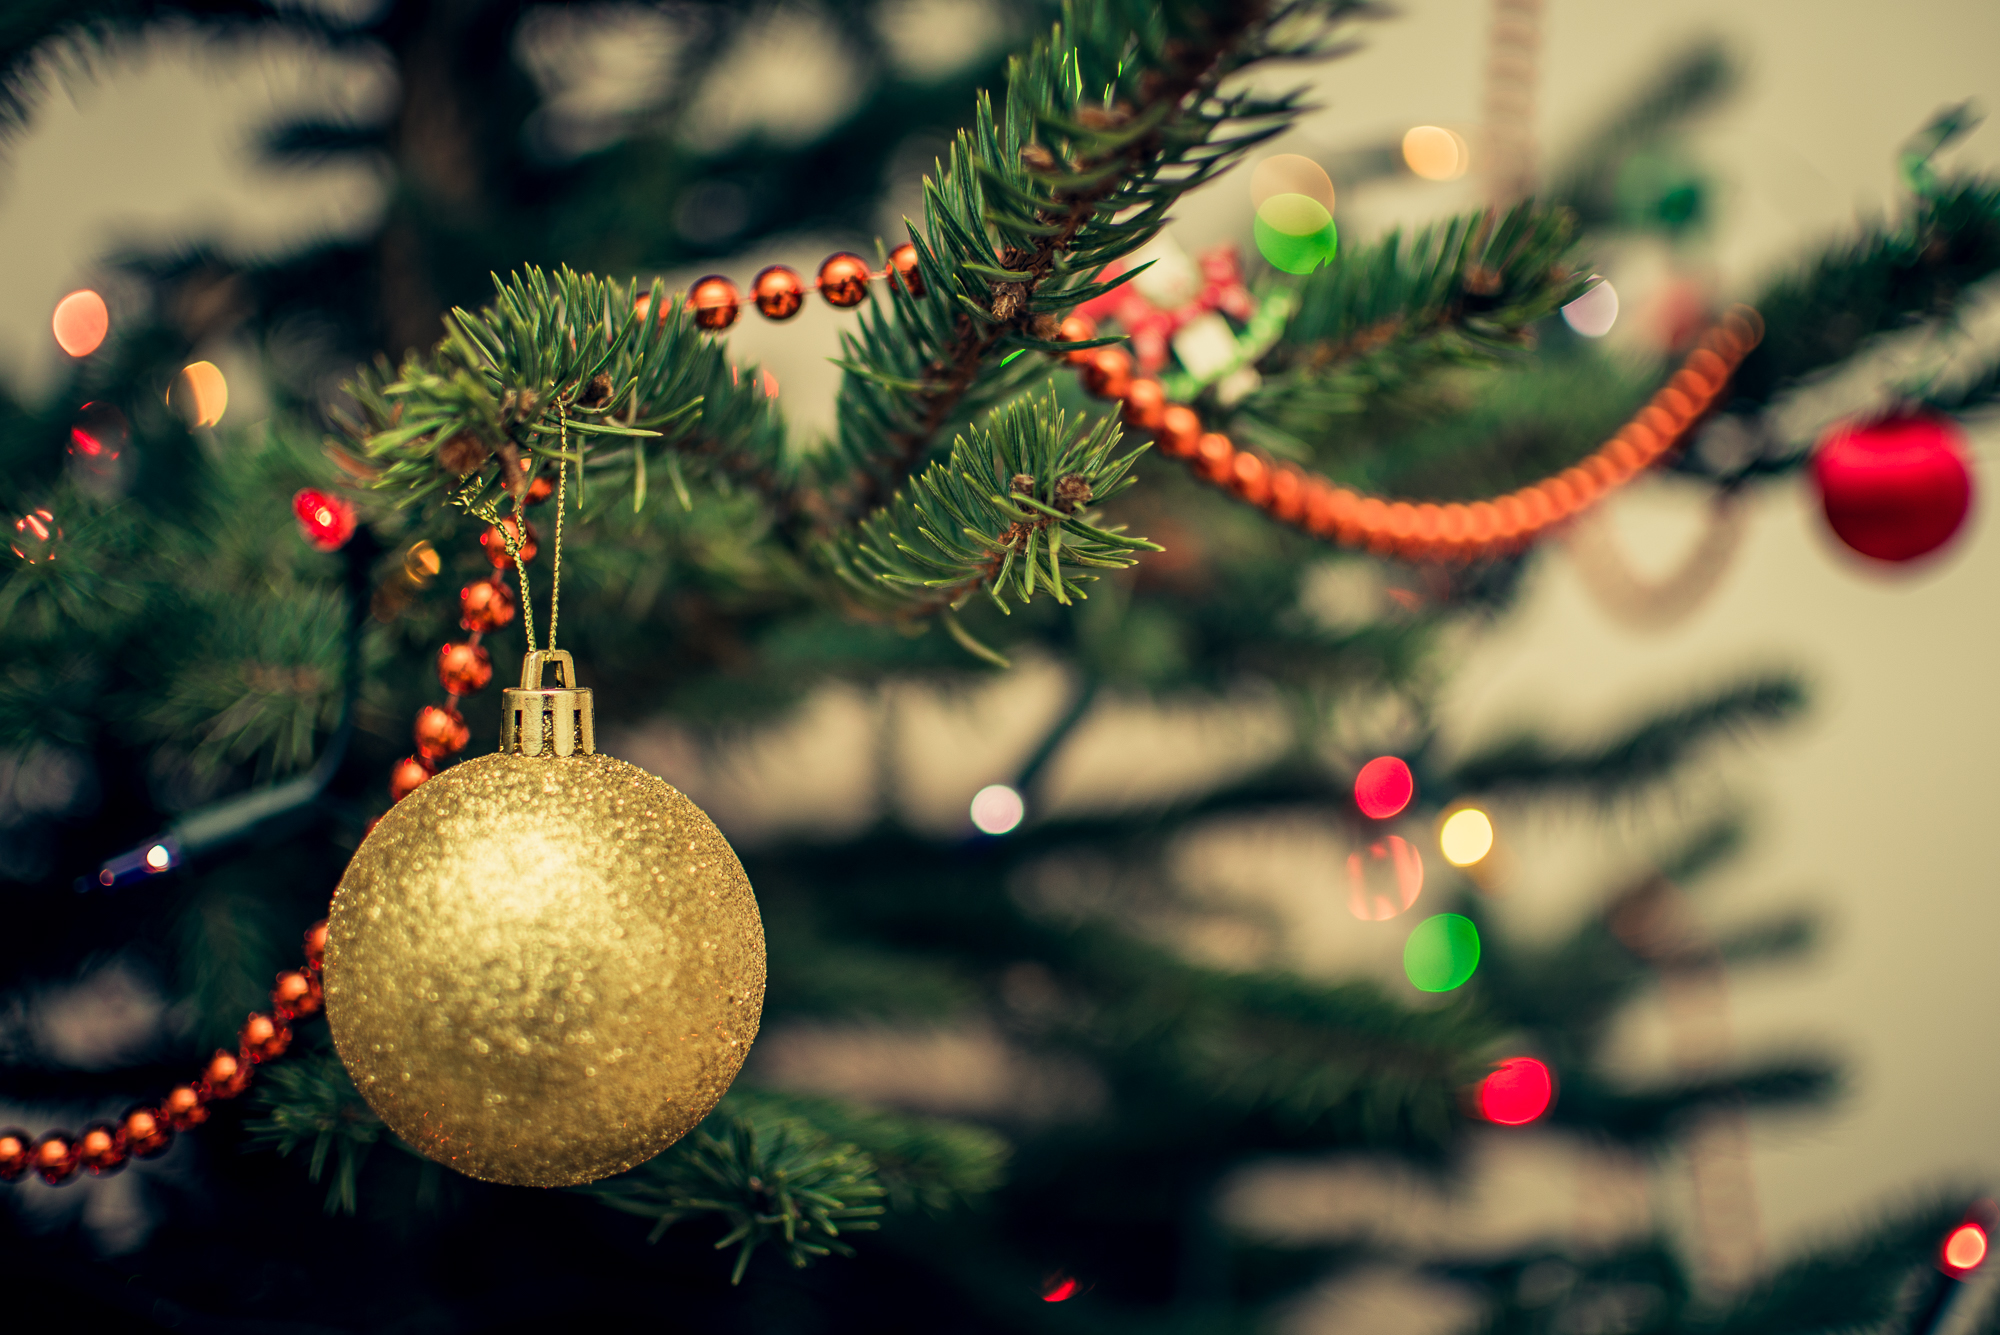 Yellow bauble on christmas tree free stock photo for Holiday themed facebook cover photos